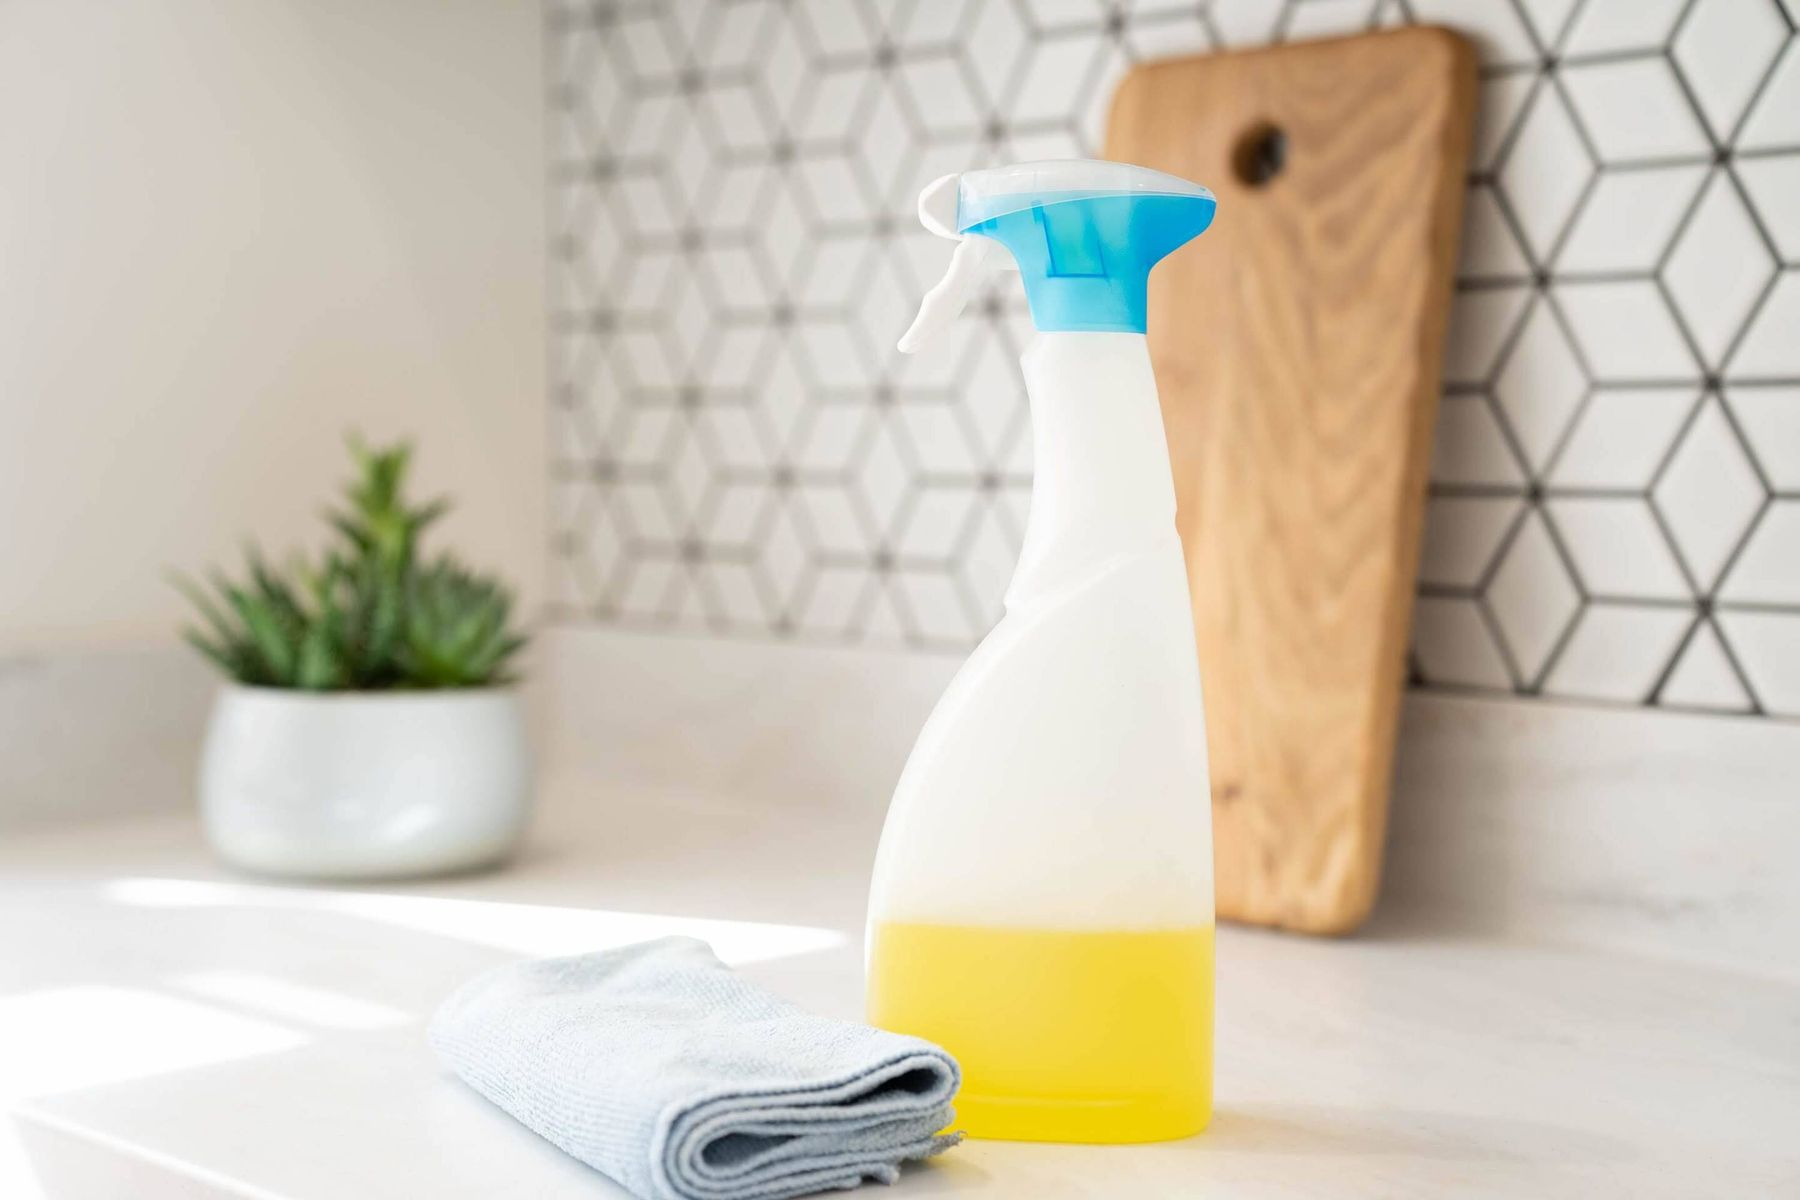 cleaning spray and cloth on the kitchen countertop